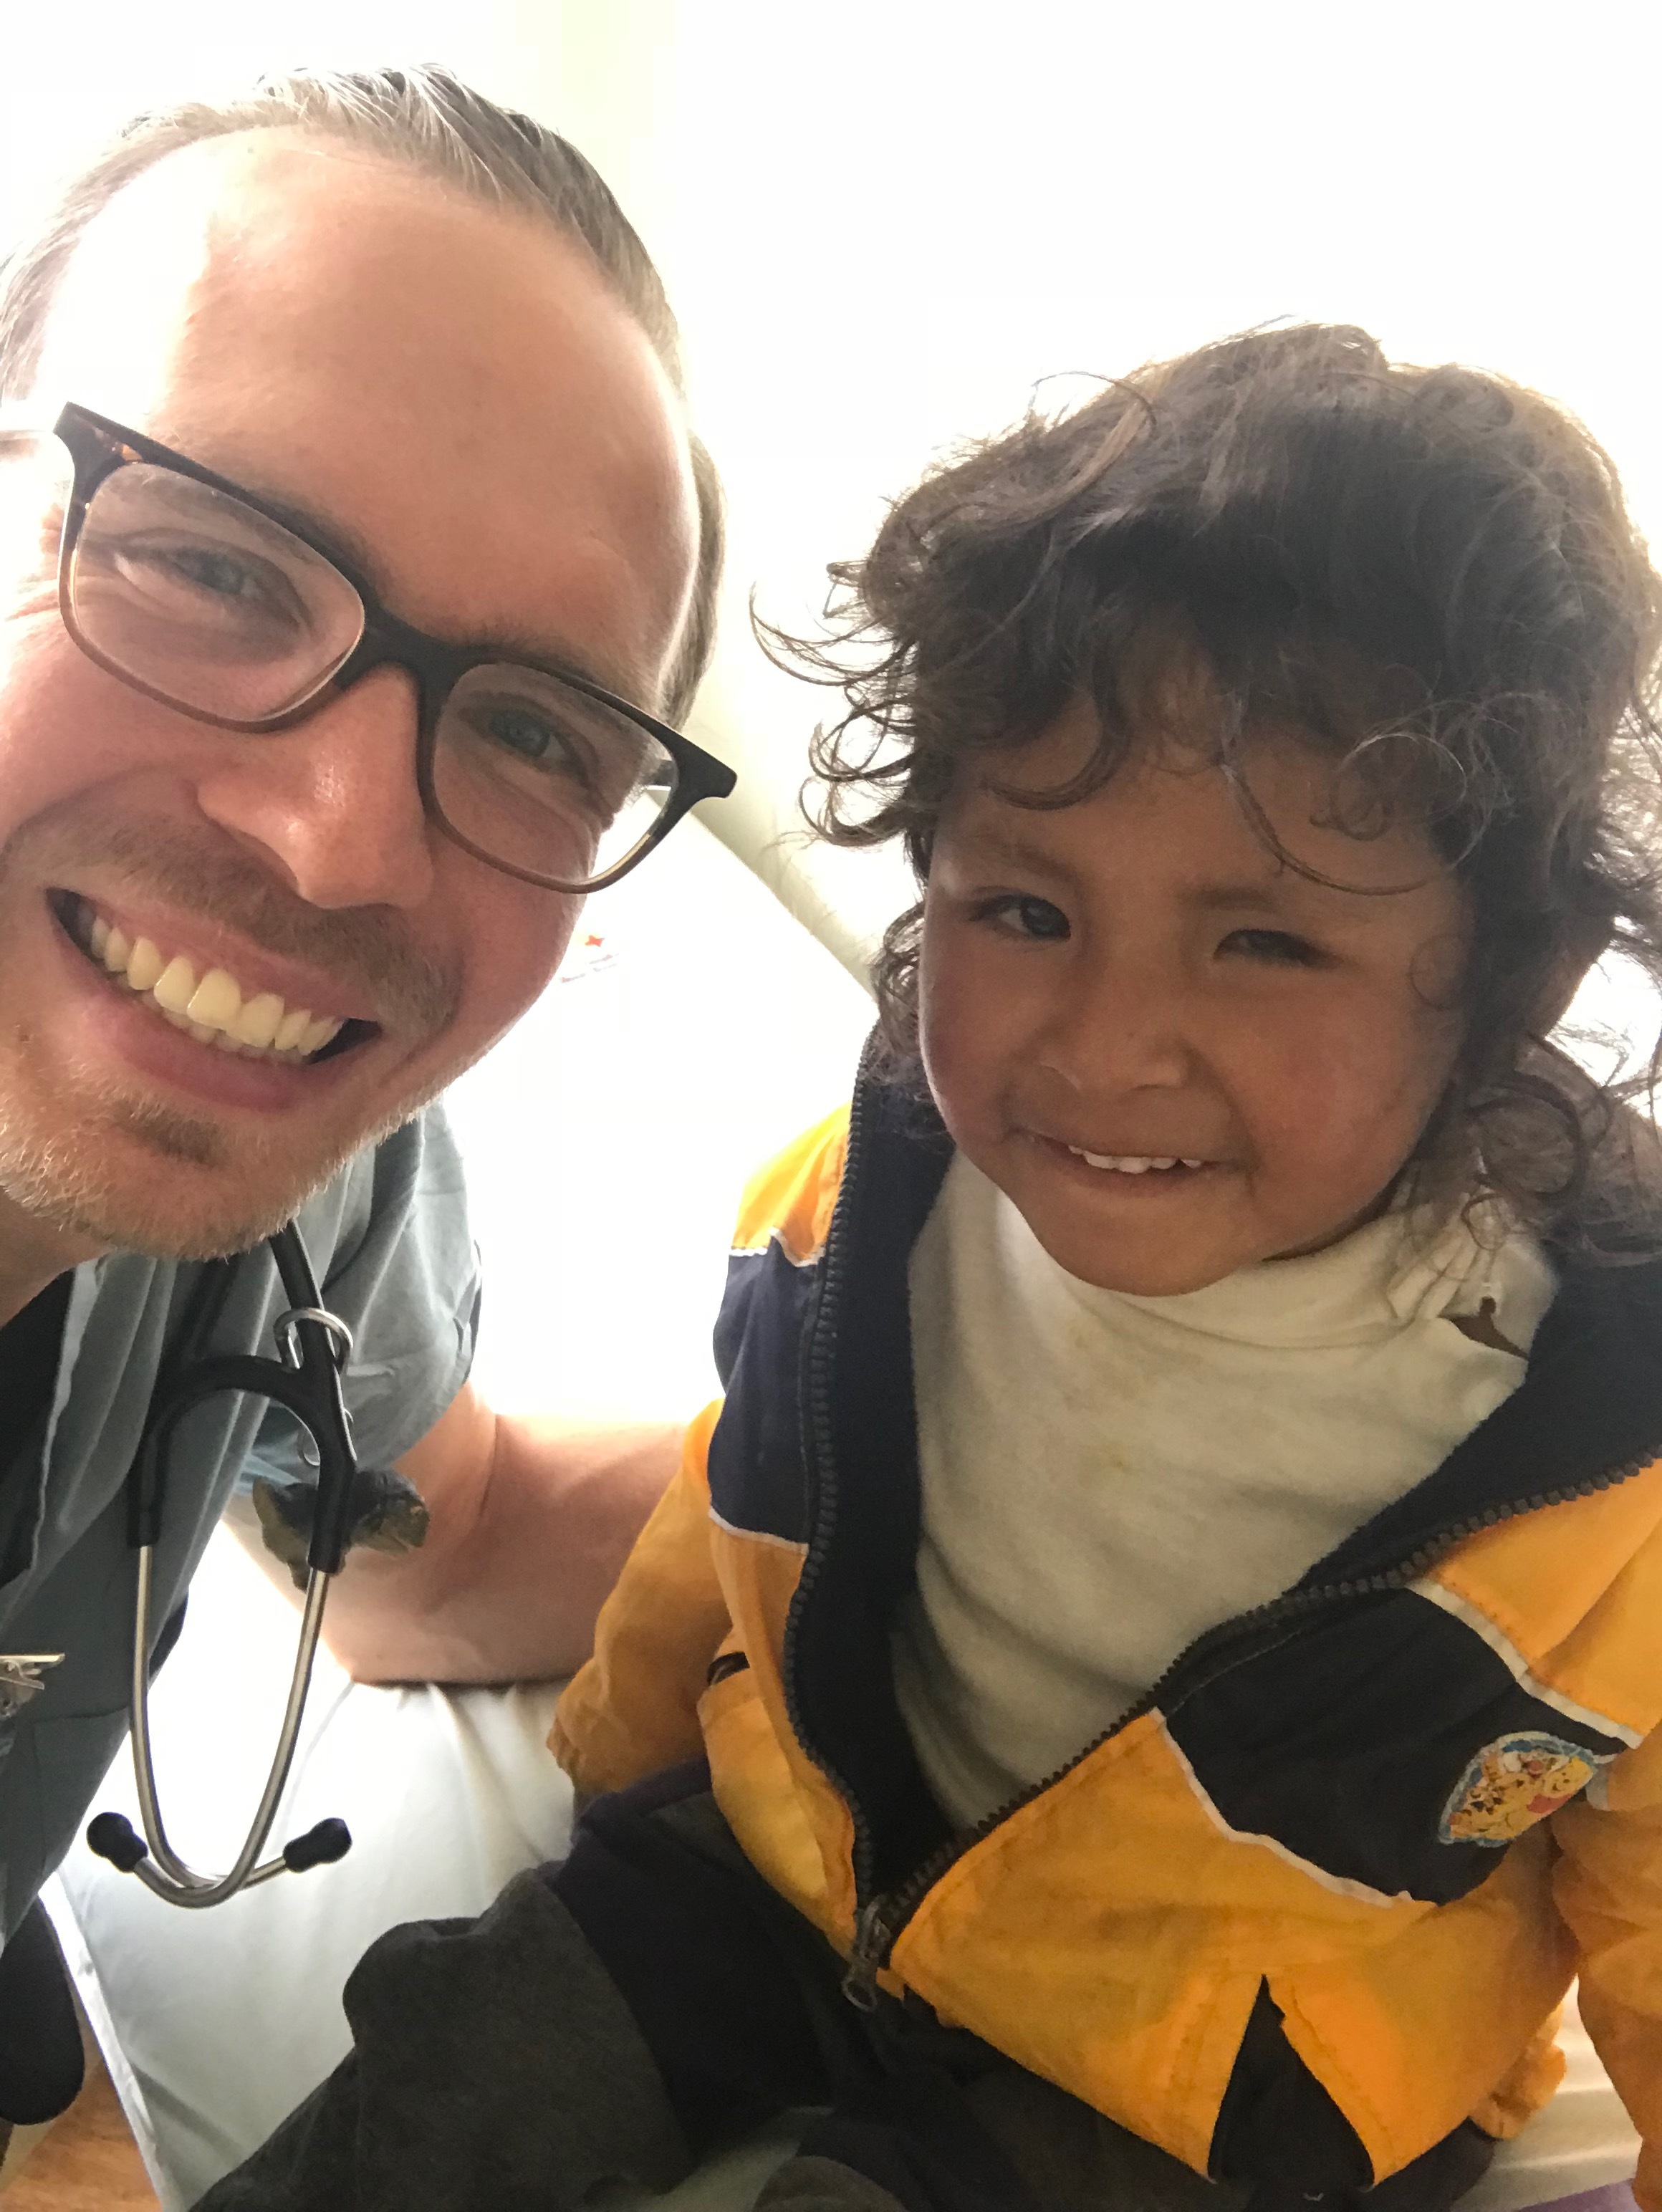 This little boy has a small left eye that is blind, most likely from birth. Many of the cases here are too advanced to fix. He will never be able to see from that left eye. But he's still a really happy kid and loved taking pictures.